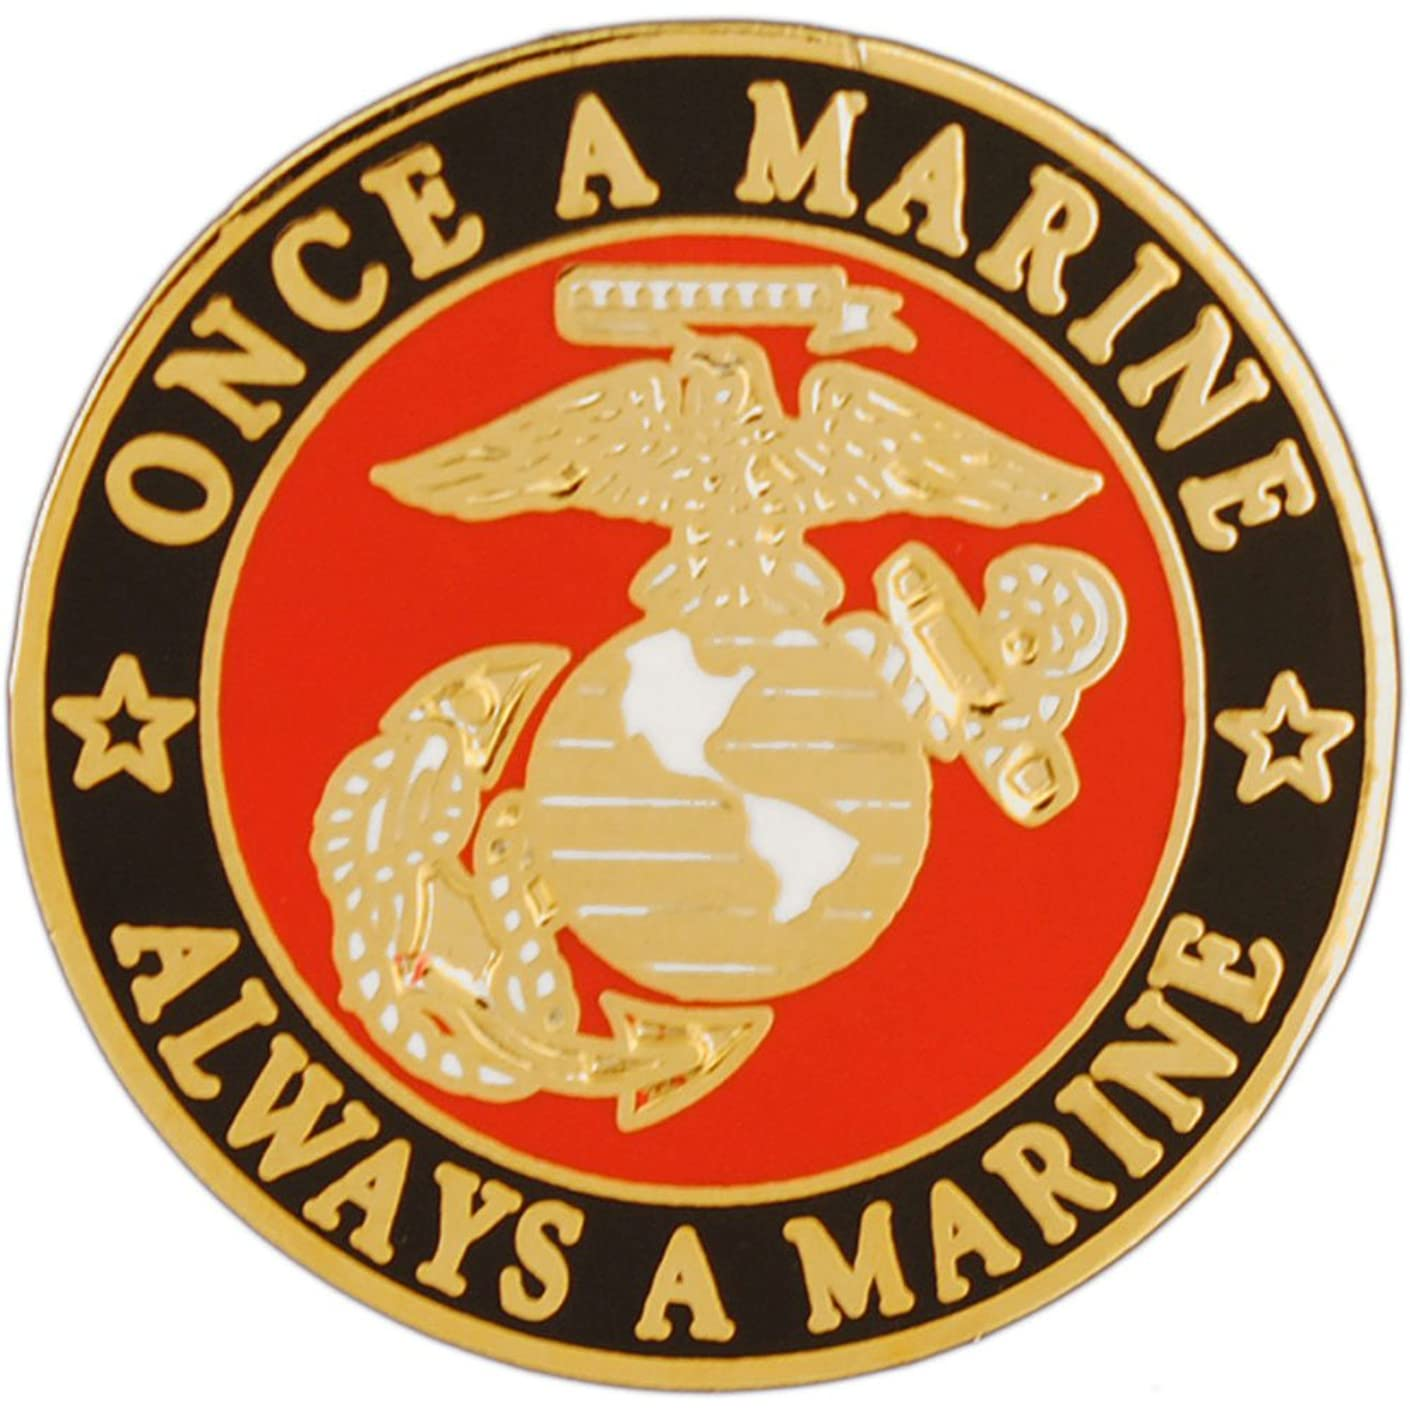 EE, Inc. USMC Once A Marine Always A Marine Pin Military Collectibles for Men Women, Small